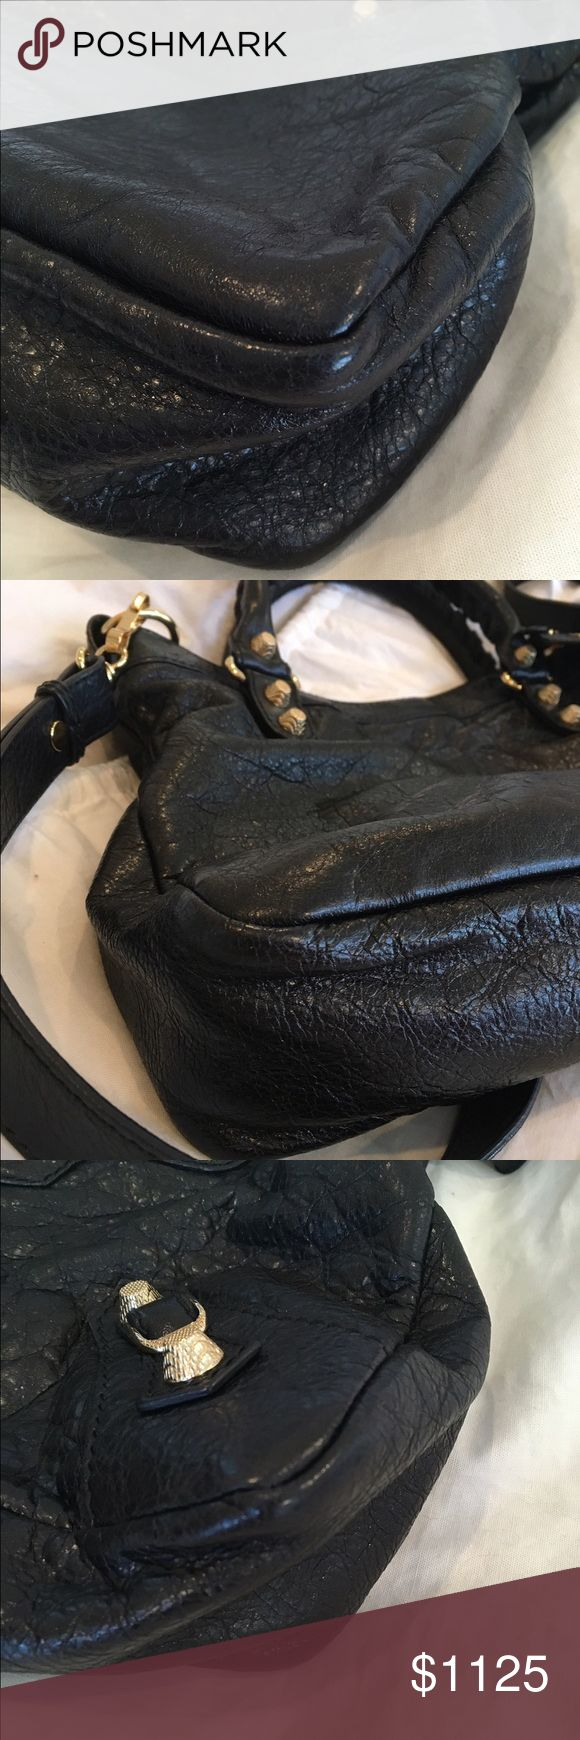 Authentic balenciaga town additional pictures Please check my original listing Balenciaga Bags Crossbody Bags